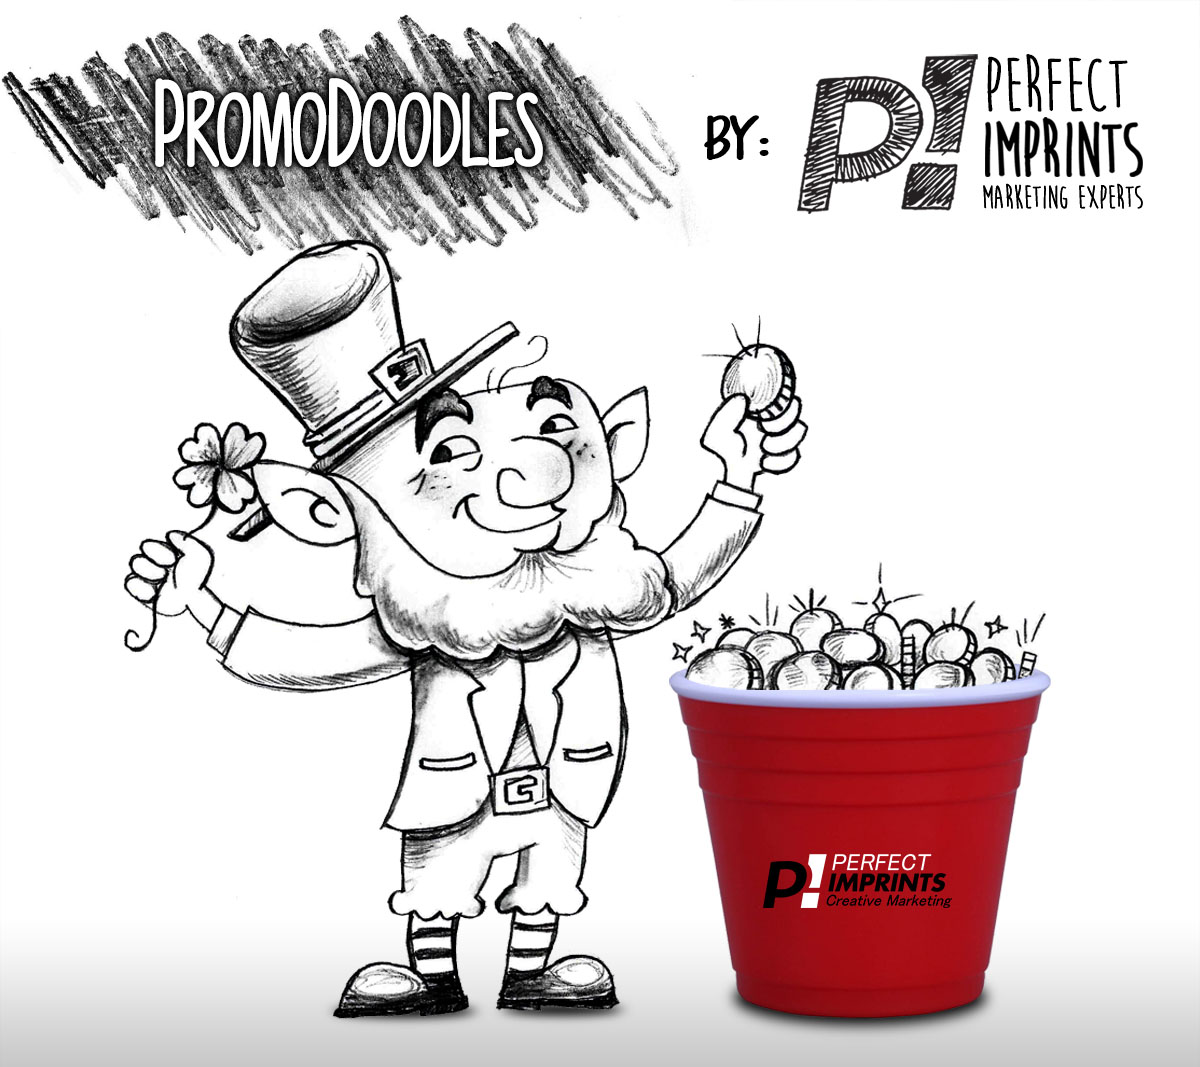 PromoDoodles by Perfect Imprints - St. Patrick's Day Leprechaun with Custom Shot Glass